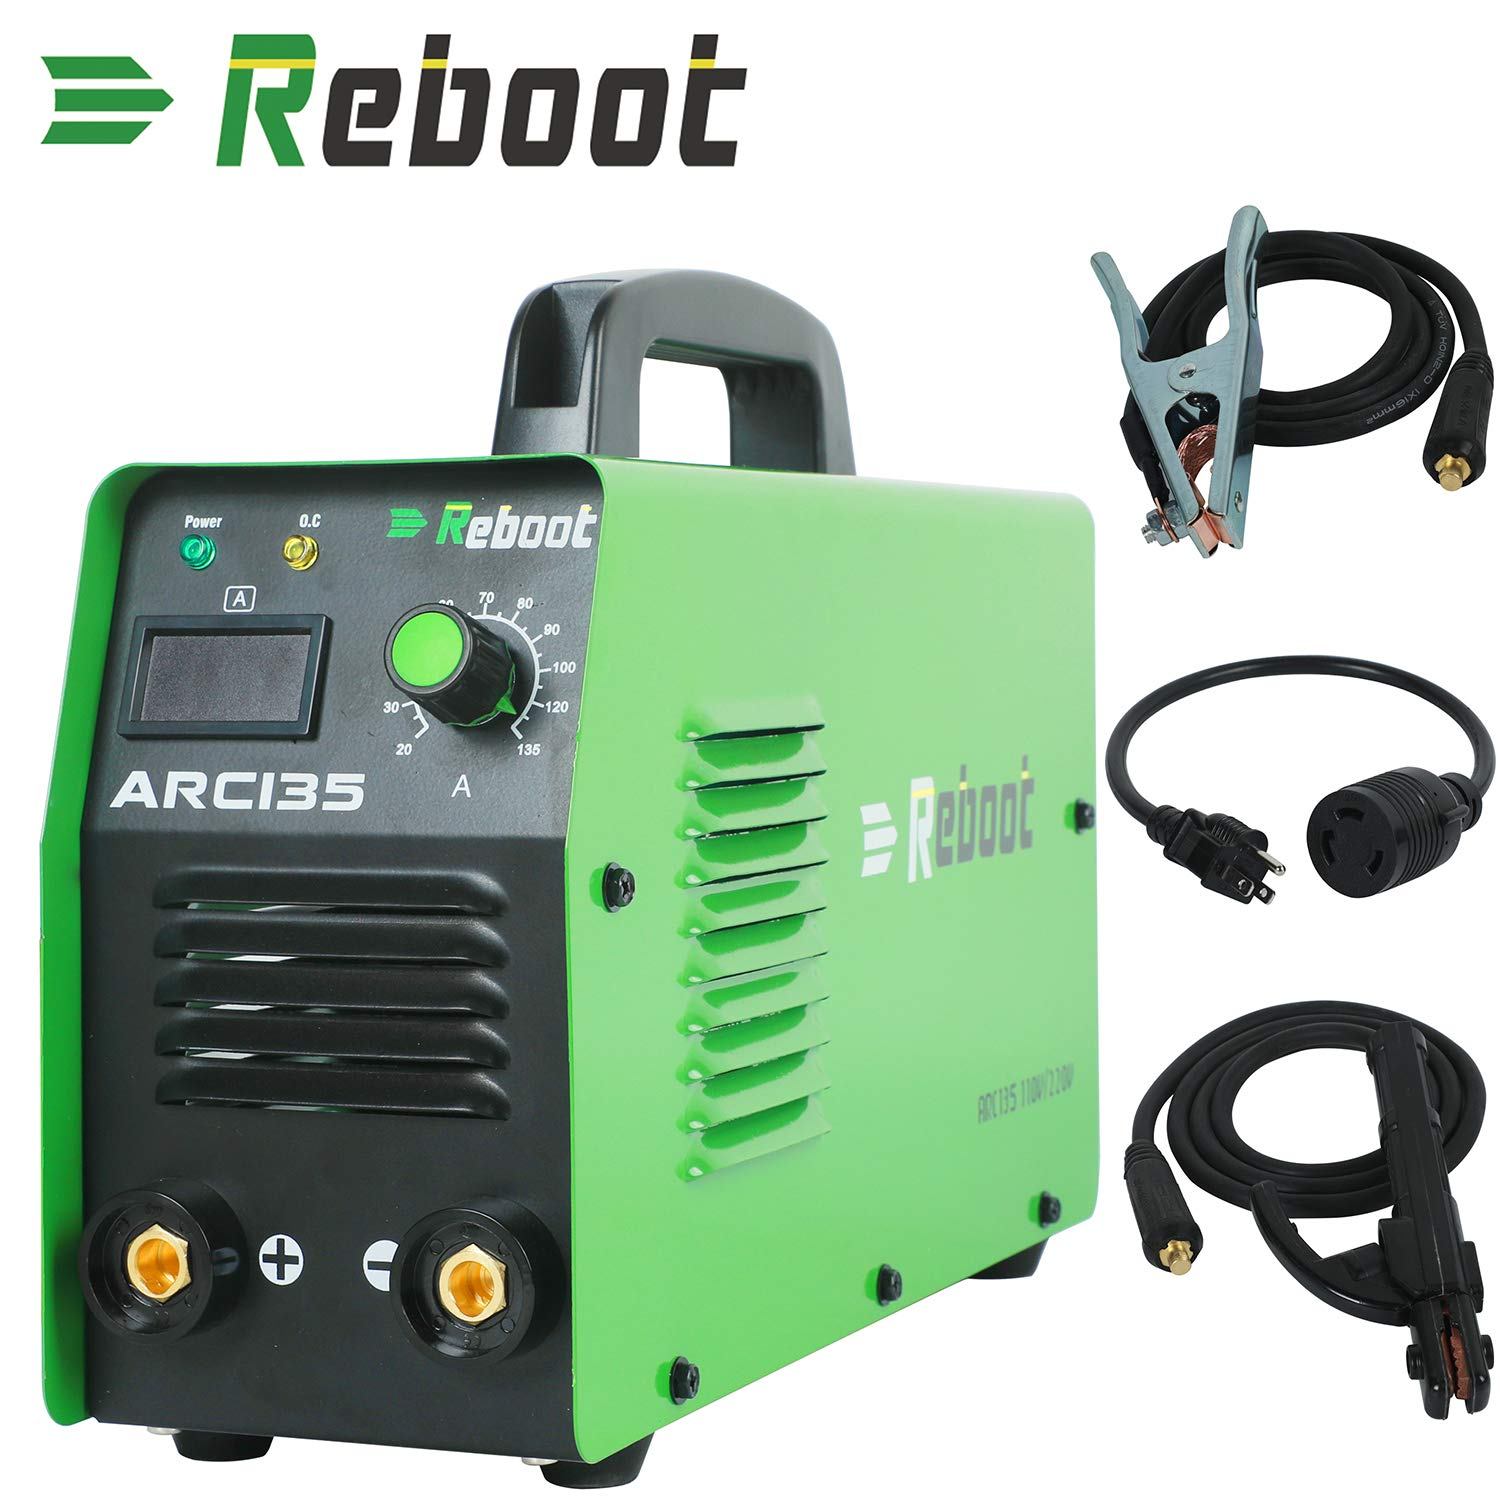 Best arc welder for the money